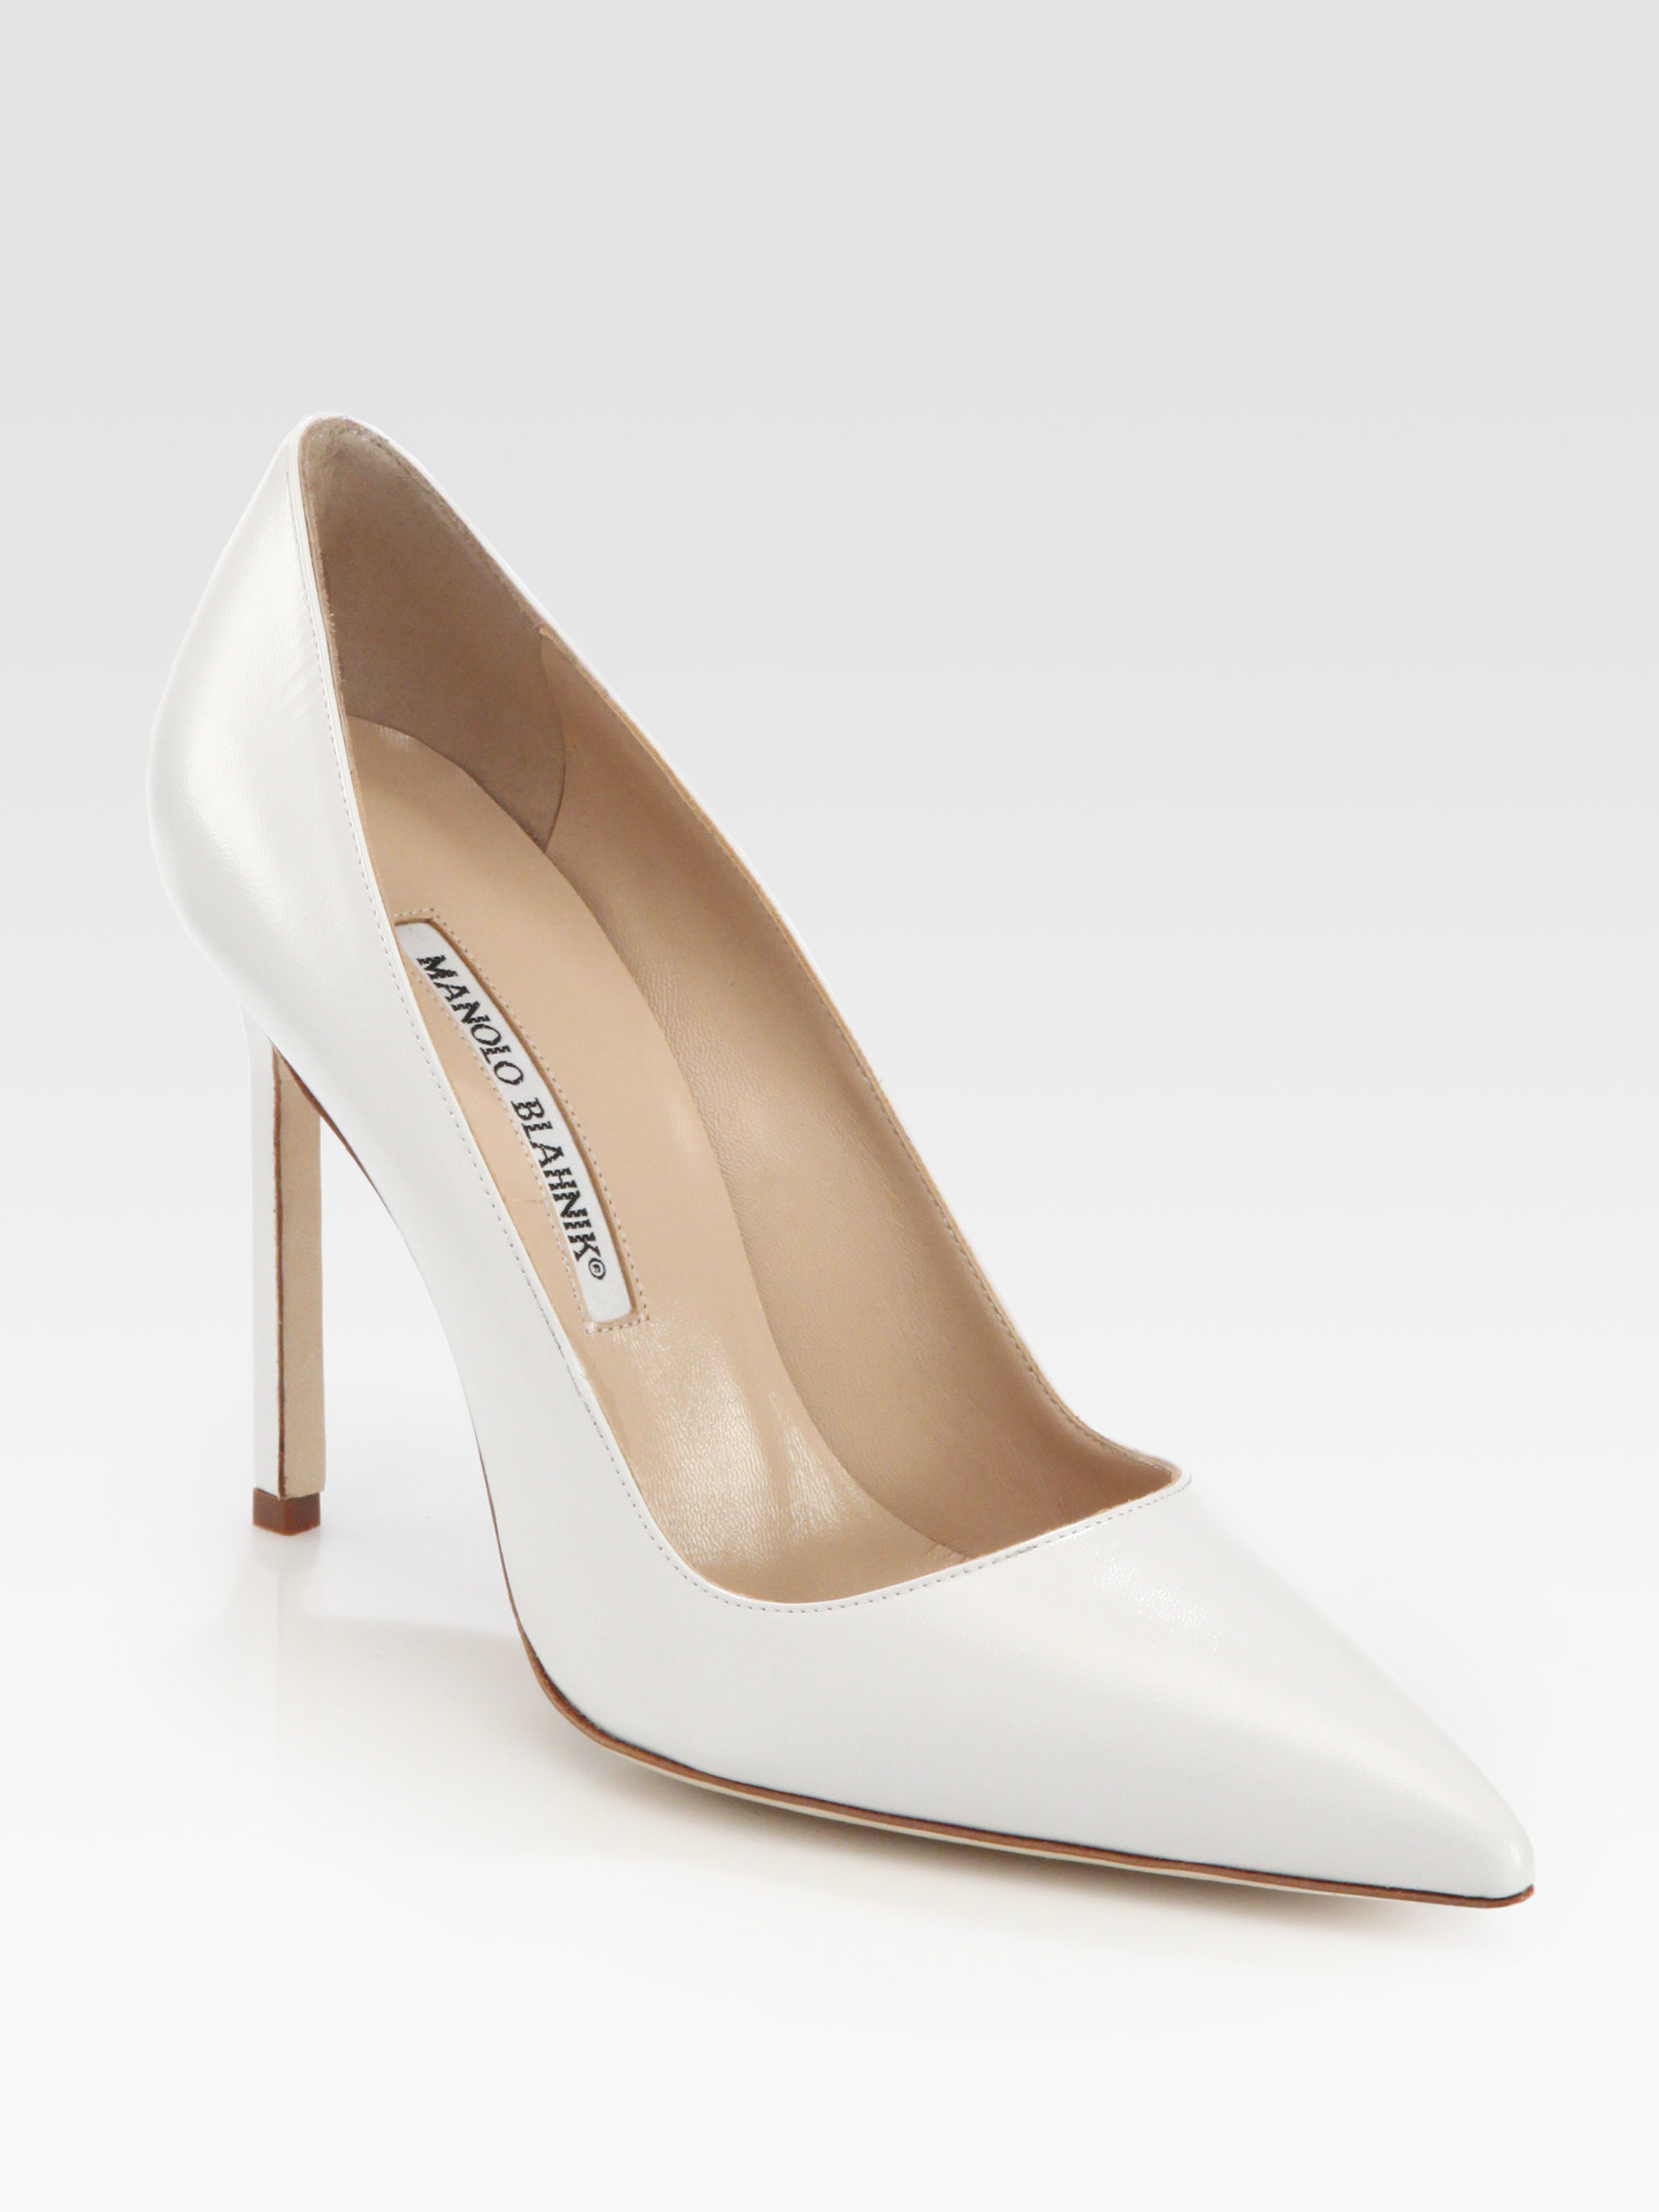 Lyst manolo blahnik bb 105 leather point toe pumps in white for Shoes by manolo blahnik